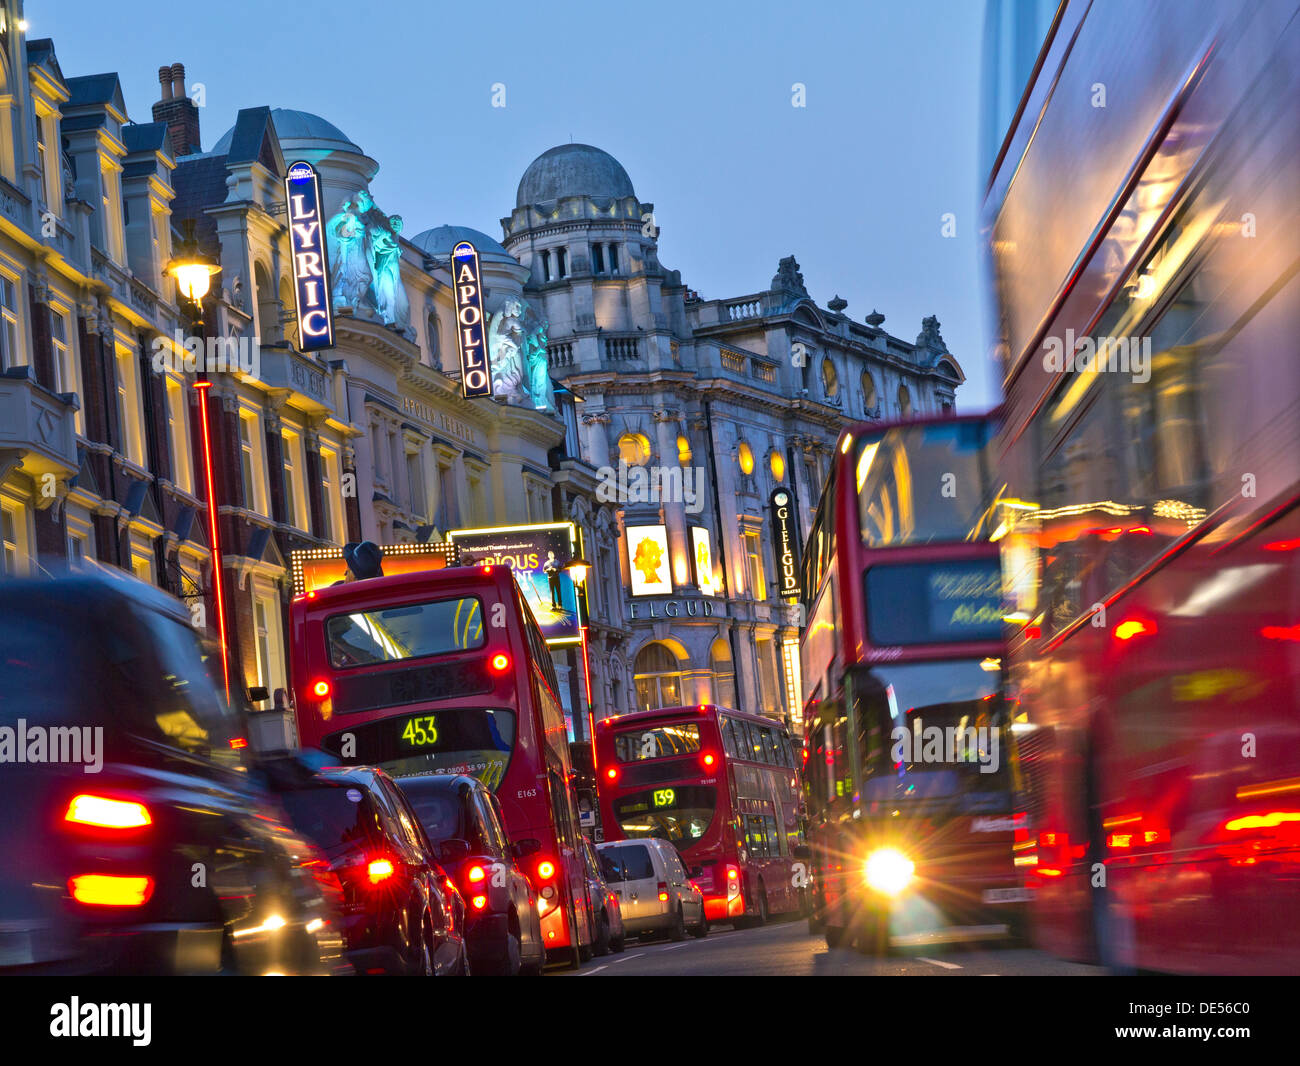 GRIDLOCK TRAFFIC JAM Theatreland traffic blurred busy with red buses and taxis in Shaftesbury Avenue West End London UK - Stock Image